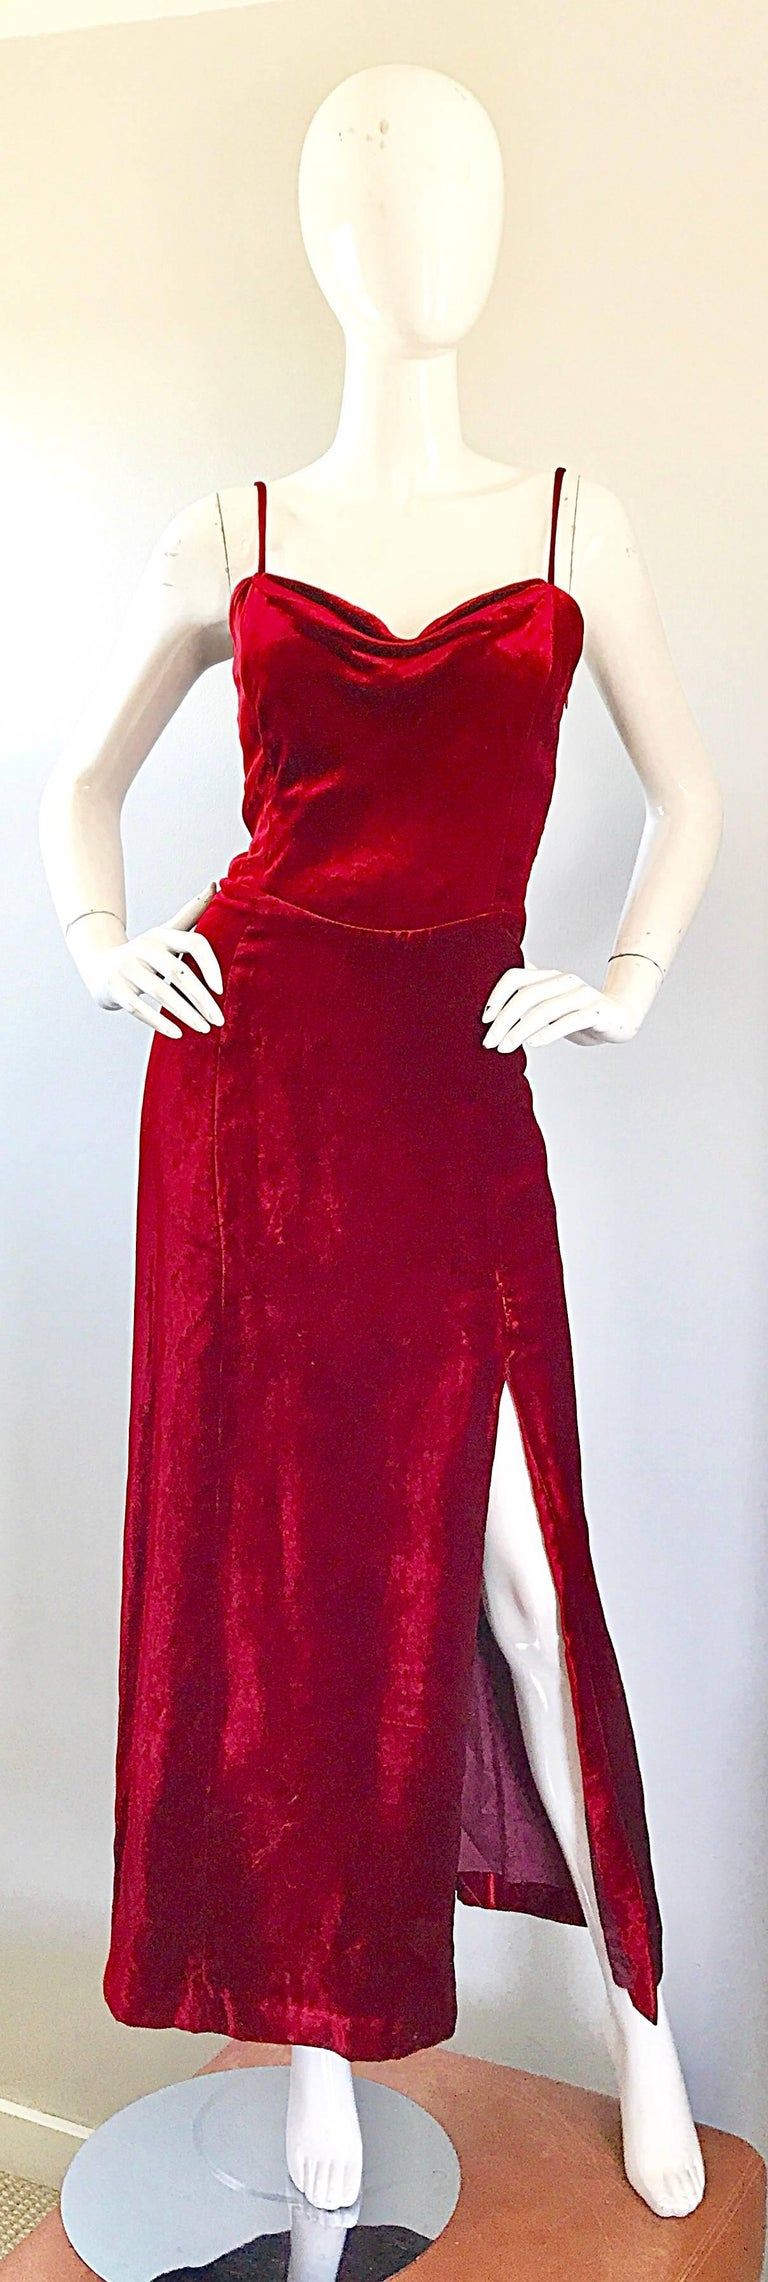 Insanely beautiful 1990s GIORGIO ARMANI COLLEZIONI crimson red silk velvet full length evening dress! Couture quality, with an amazing fit! Hidden interior weight on inner bust creates a beautiful drape at center bust, and gives this beauty a